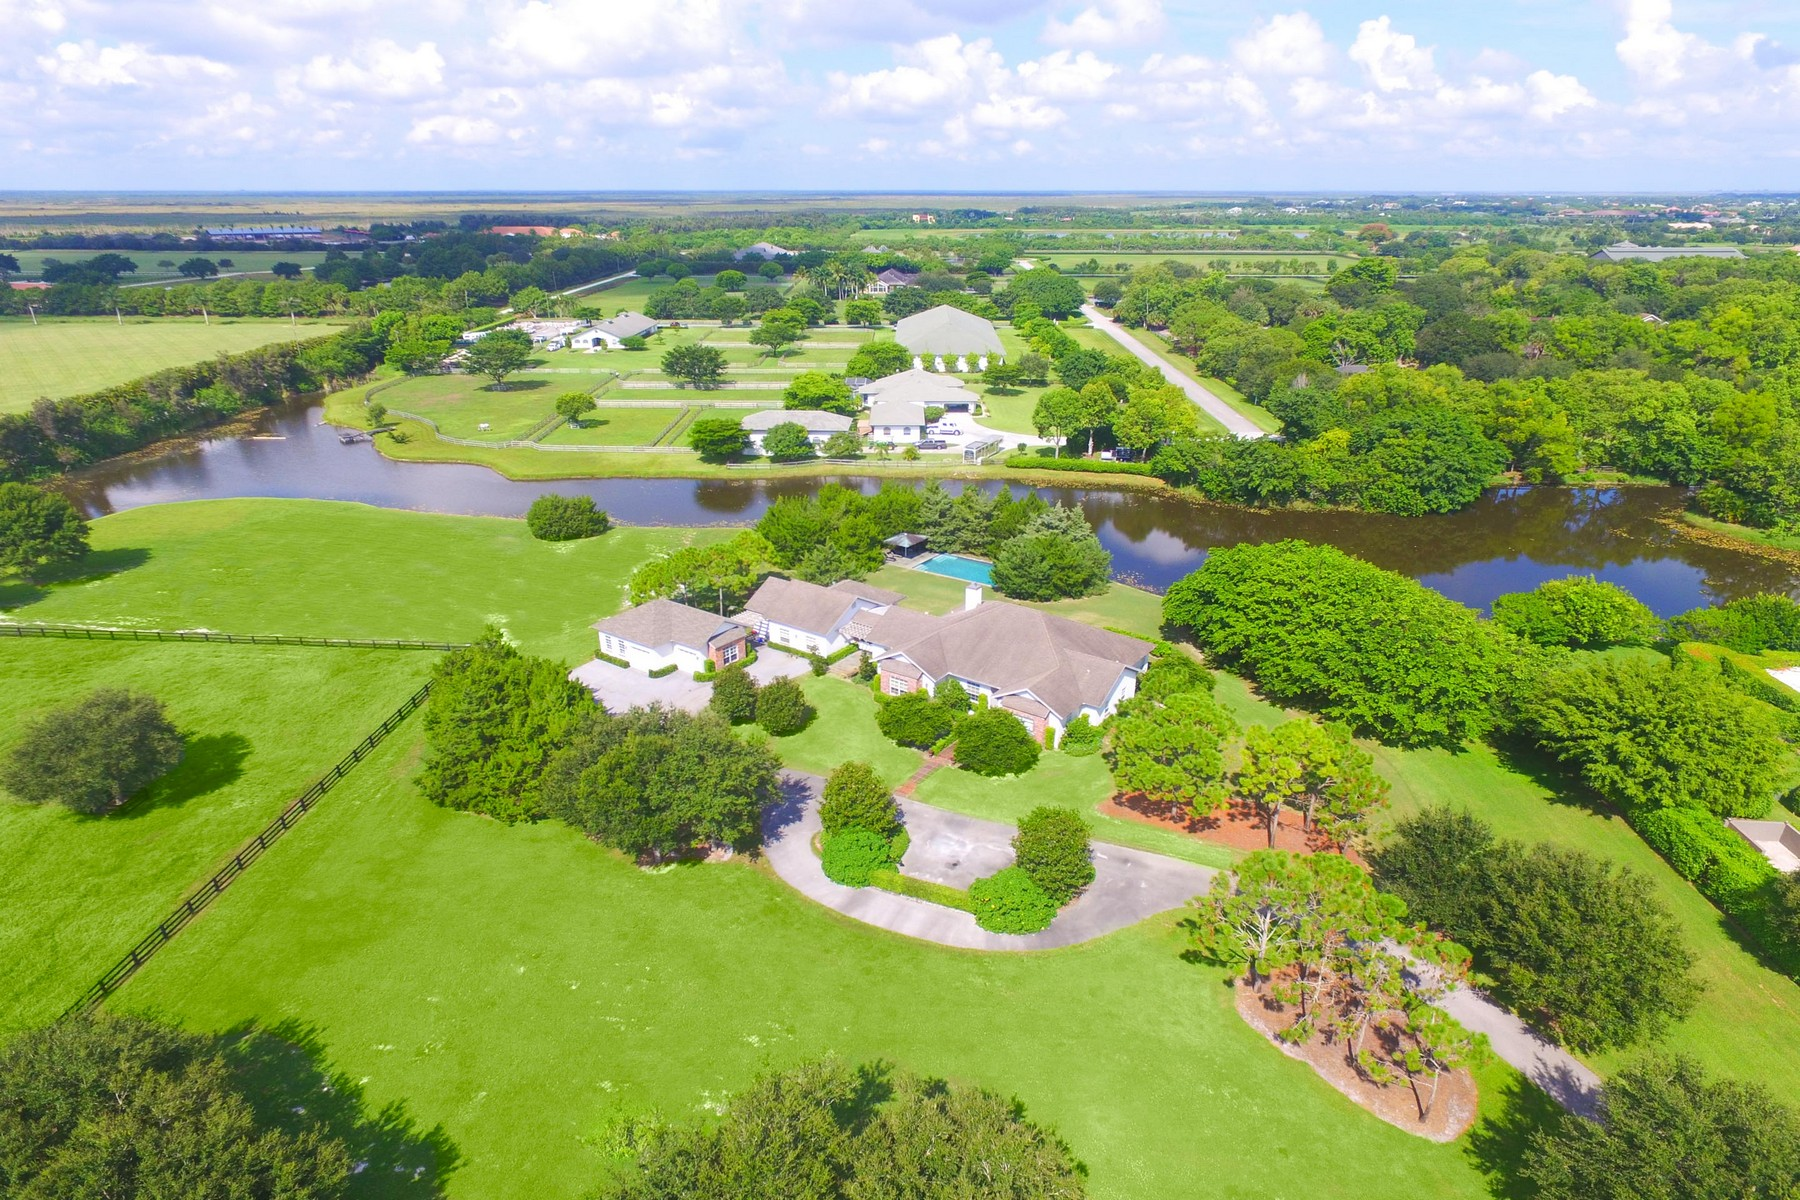 Maison unifamiliale pour l Vente à 5545 SOUTH SHORE BLVD Wellington, Florida, 33414 États-Unis